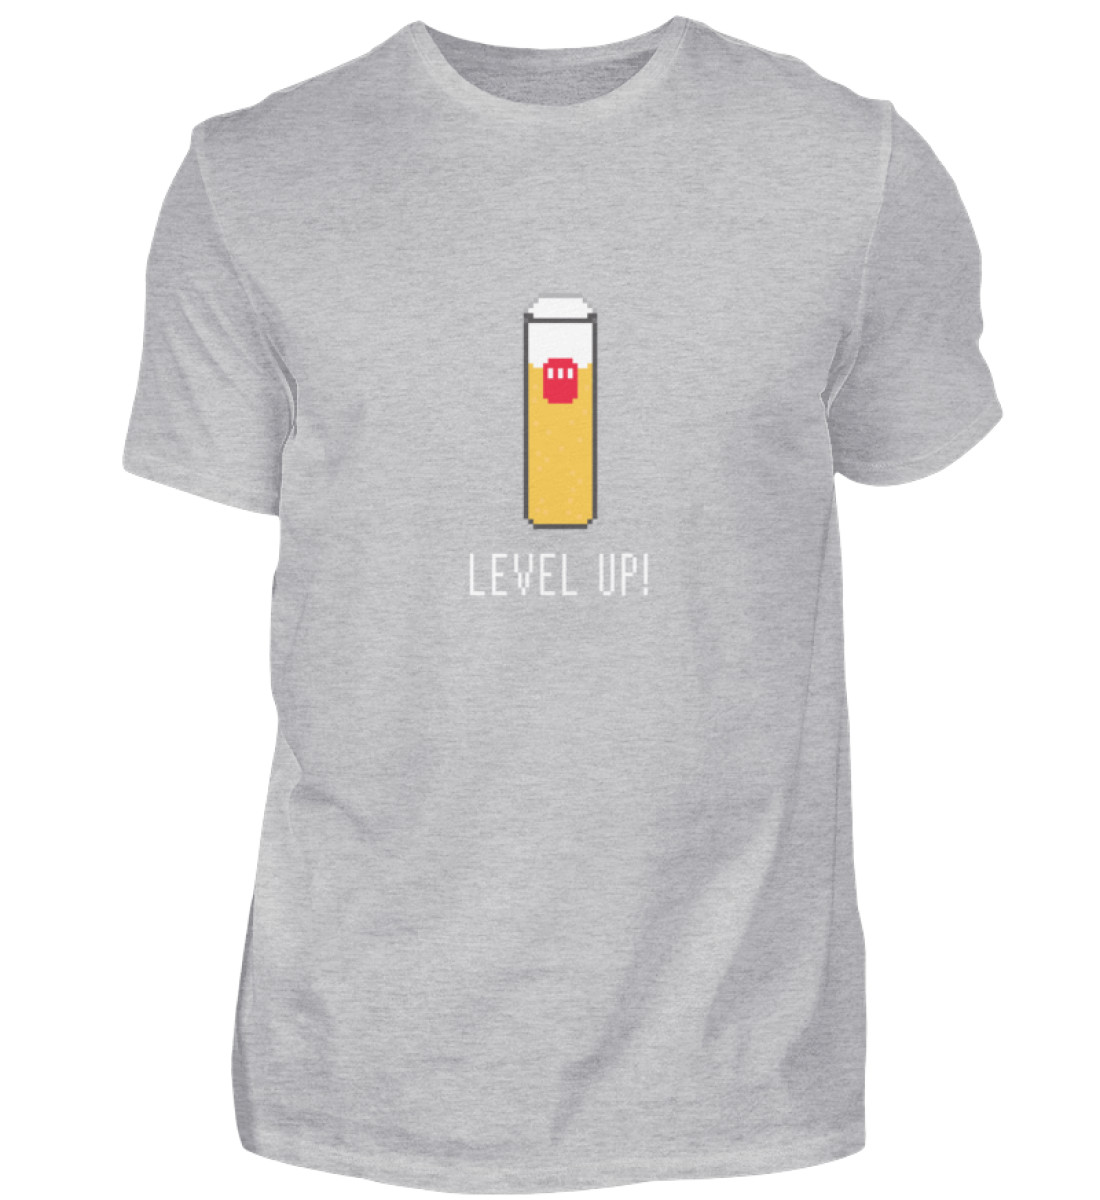 Level up T-Shirt - Herren Shirt-17